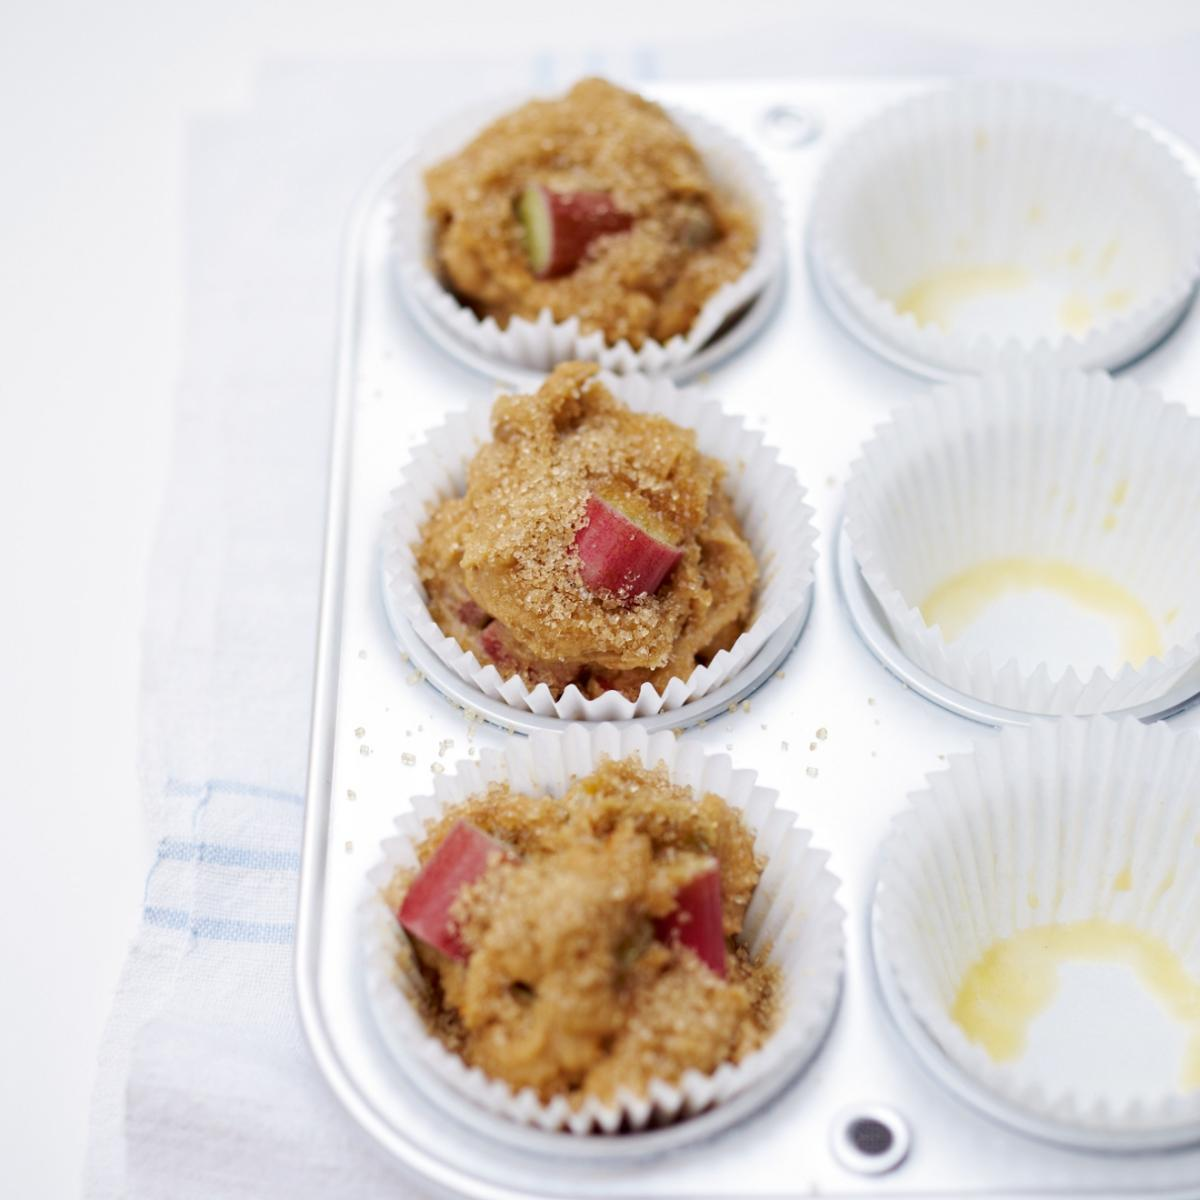 A picture of Delia's Rhubarb and Orange Muffins recipe